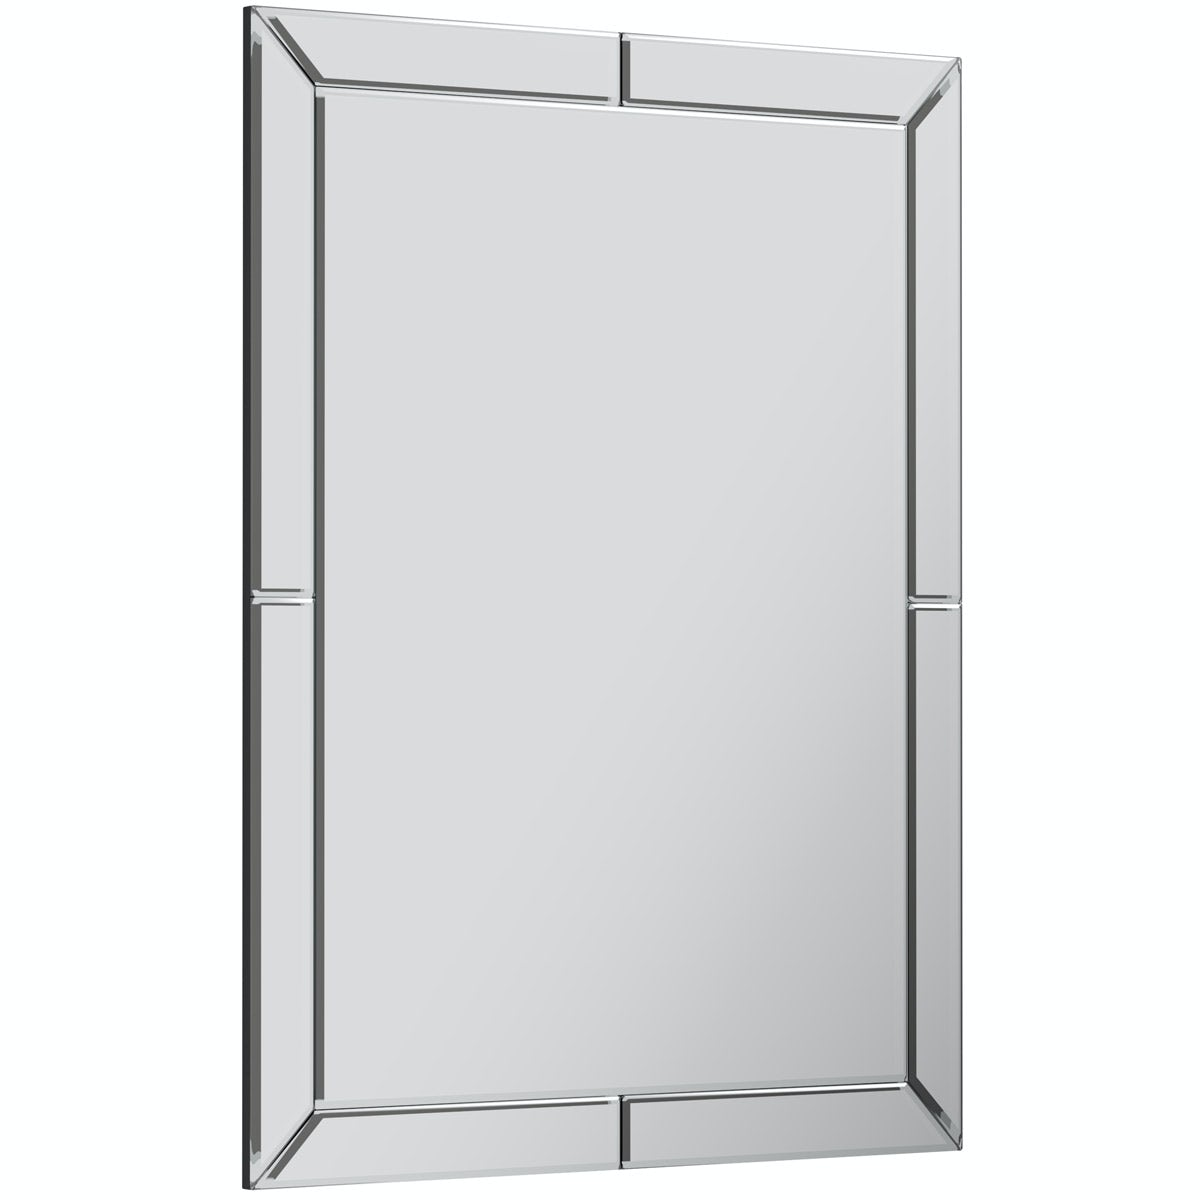 The Bath Co. Beaumont rectangular wall mirror 800 x 600mm